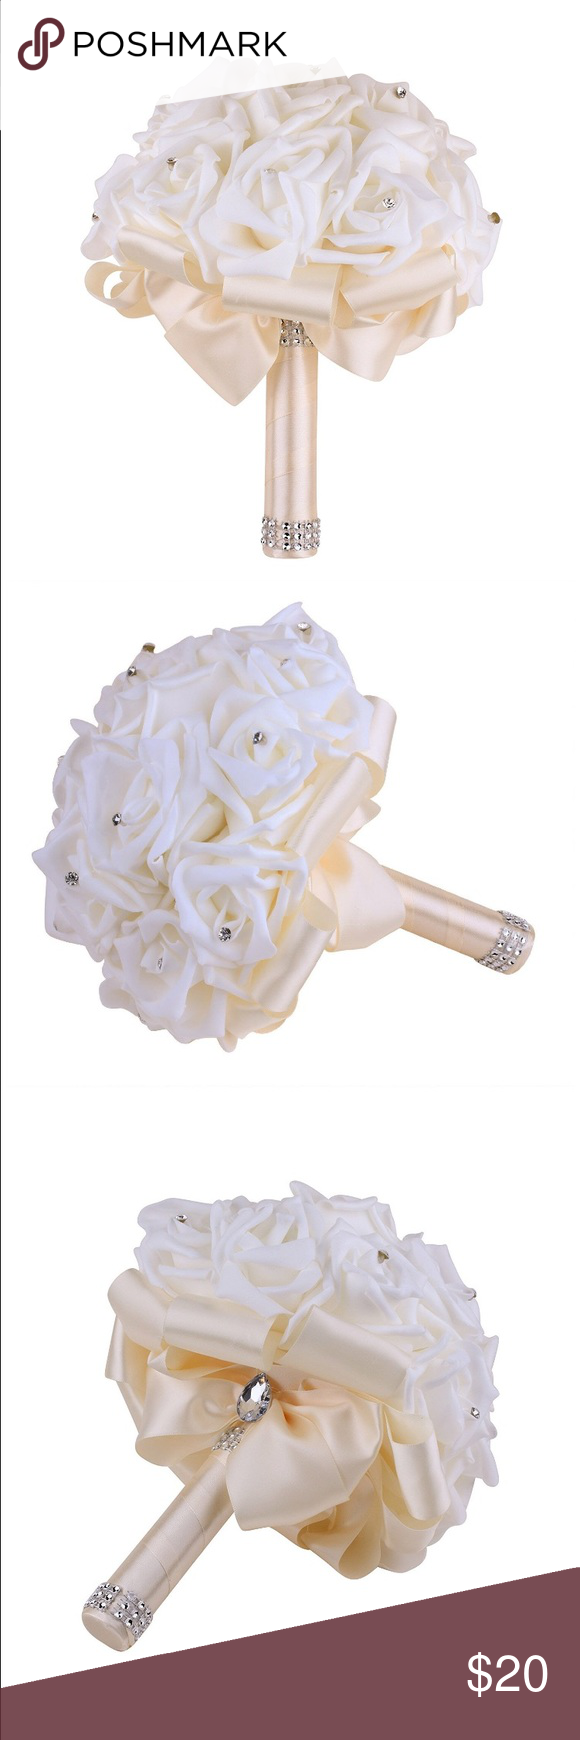 Bridal bouquet Ivory color. Faux flowers. Very elegant! Other